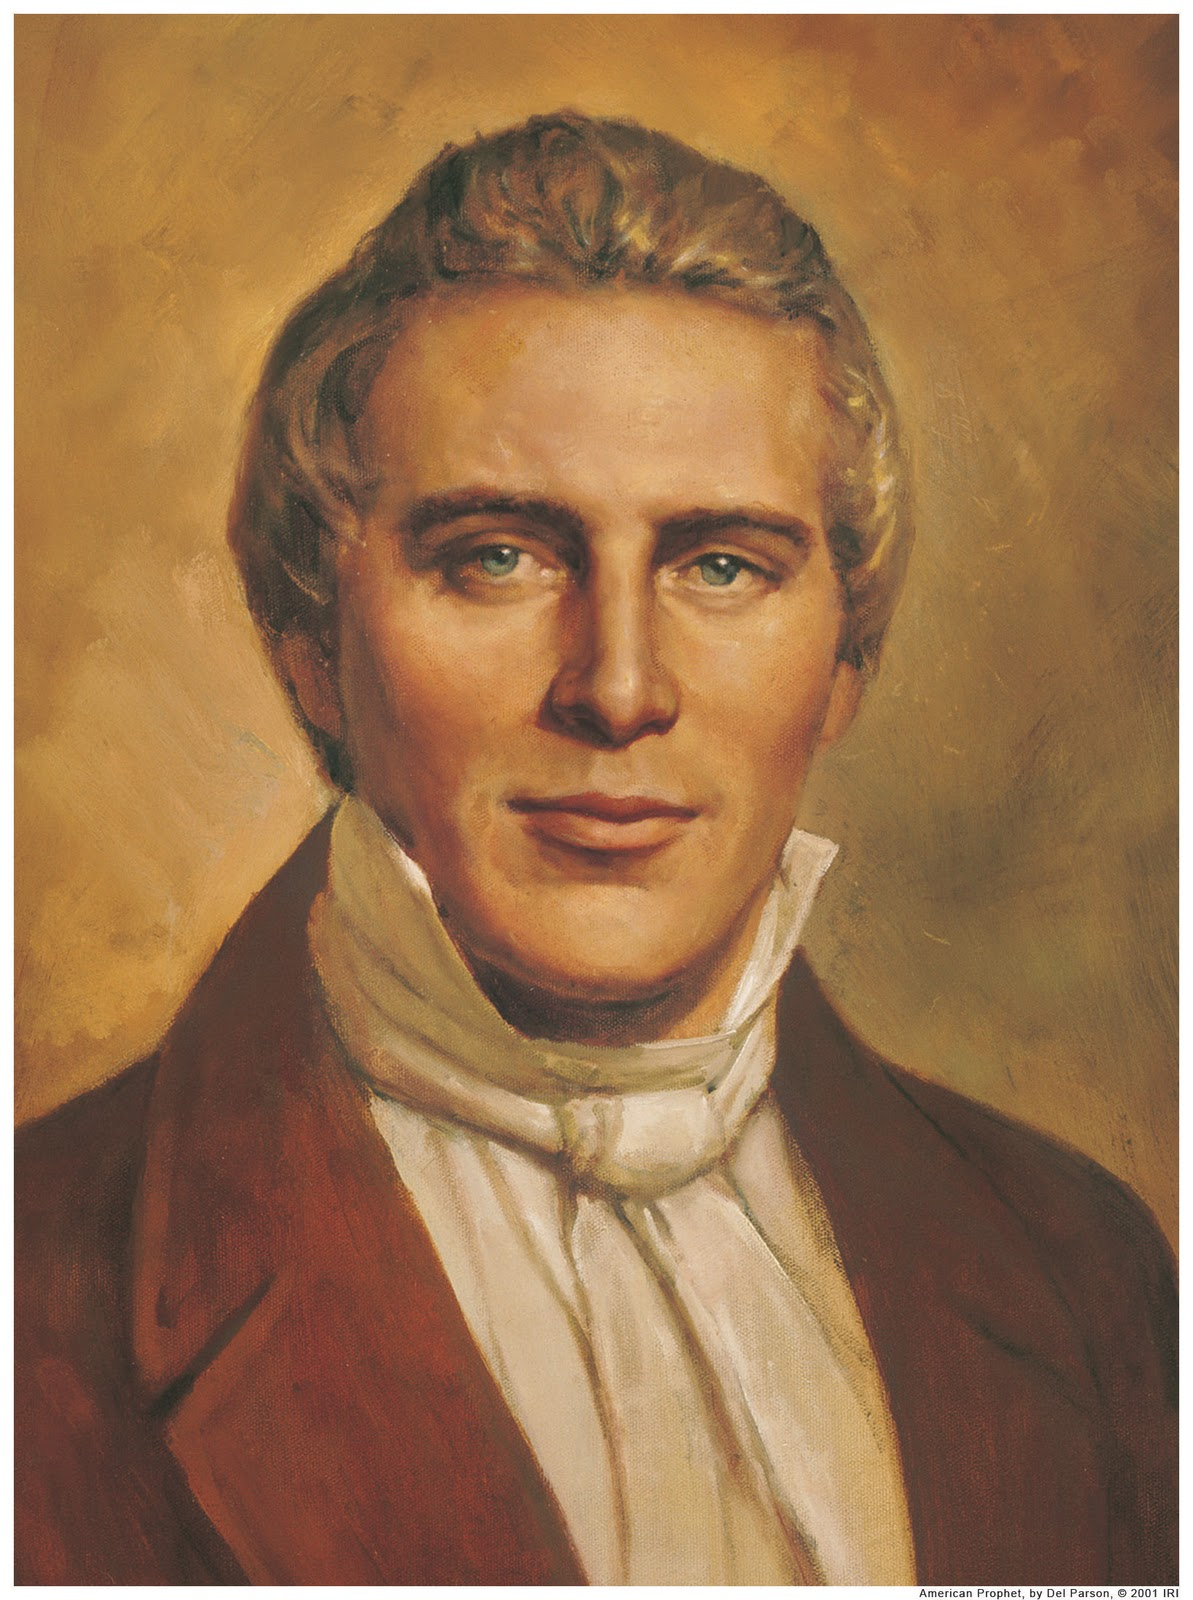 Lds clipart joseph smith. Why did moroni quote